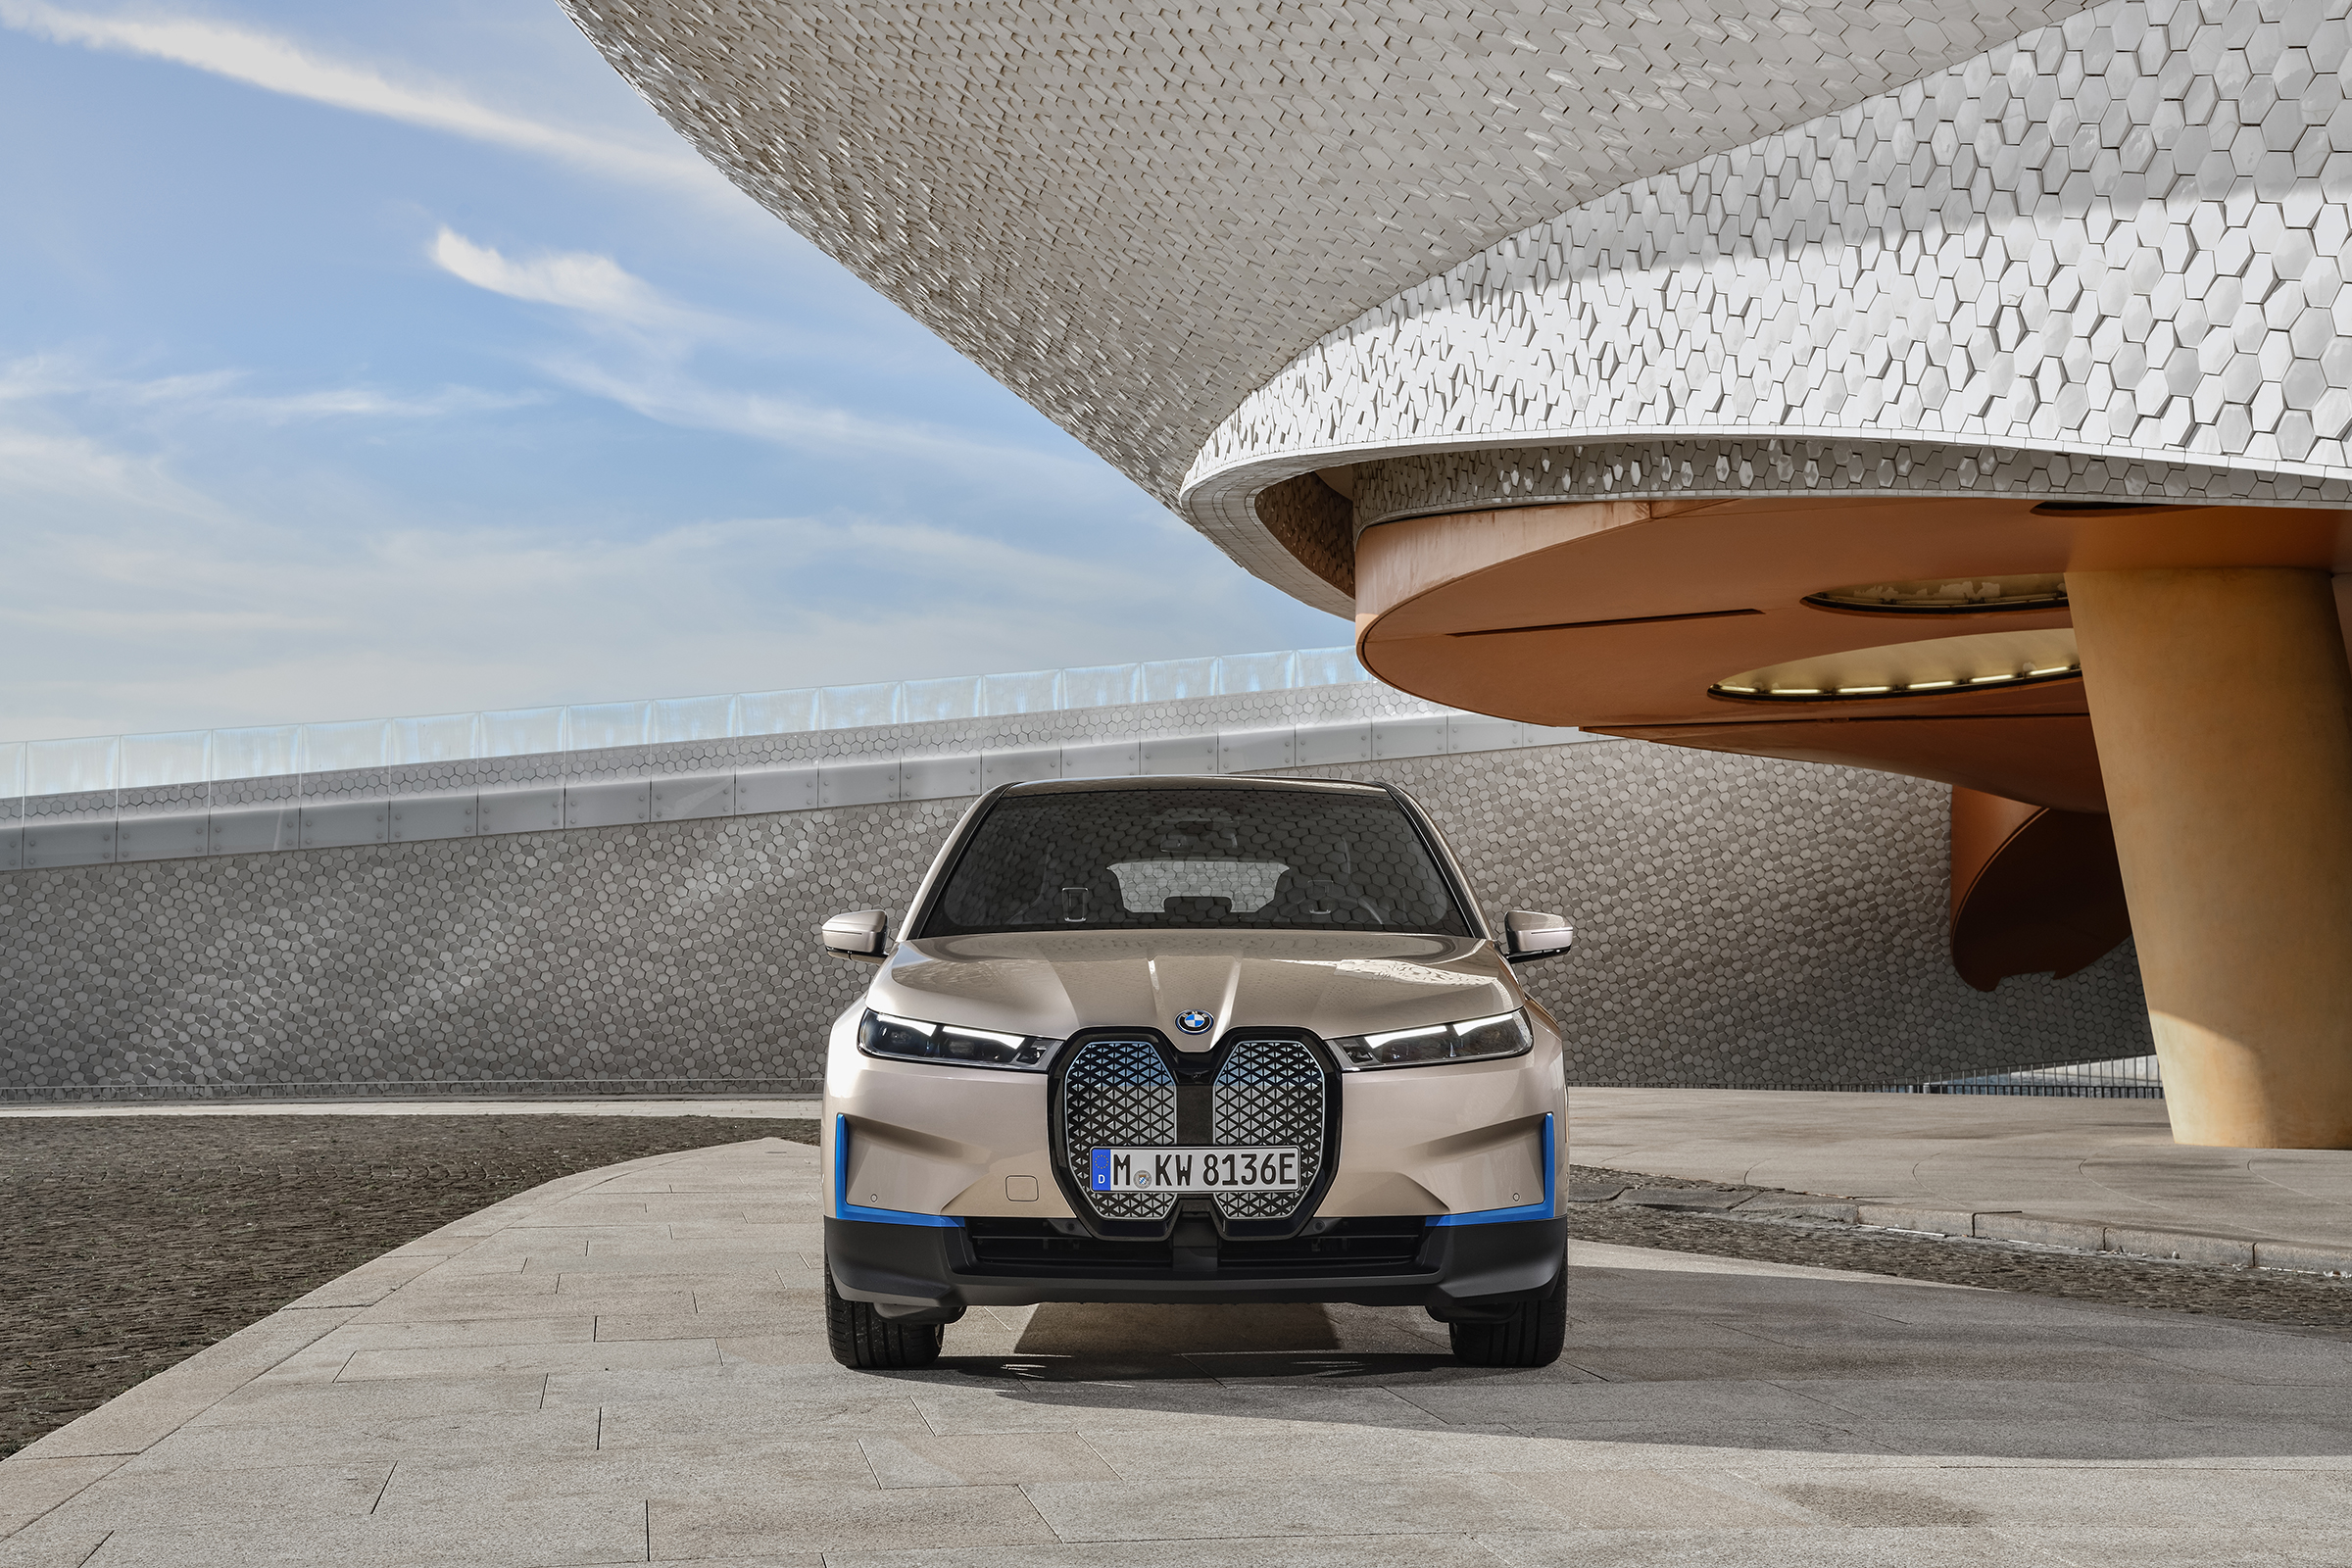 2021 BMW iX EV revealed as Tesla electric SUV fighter - EV ...